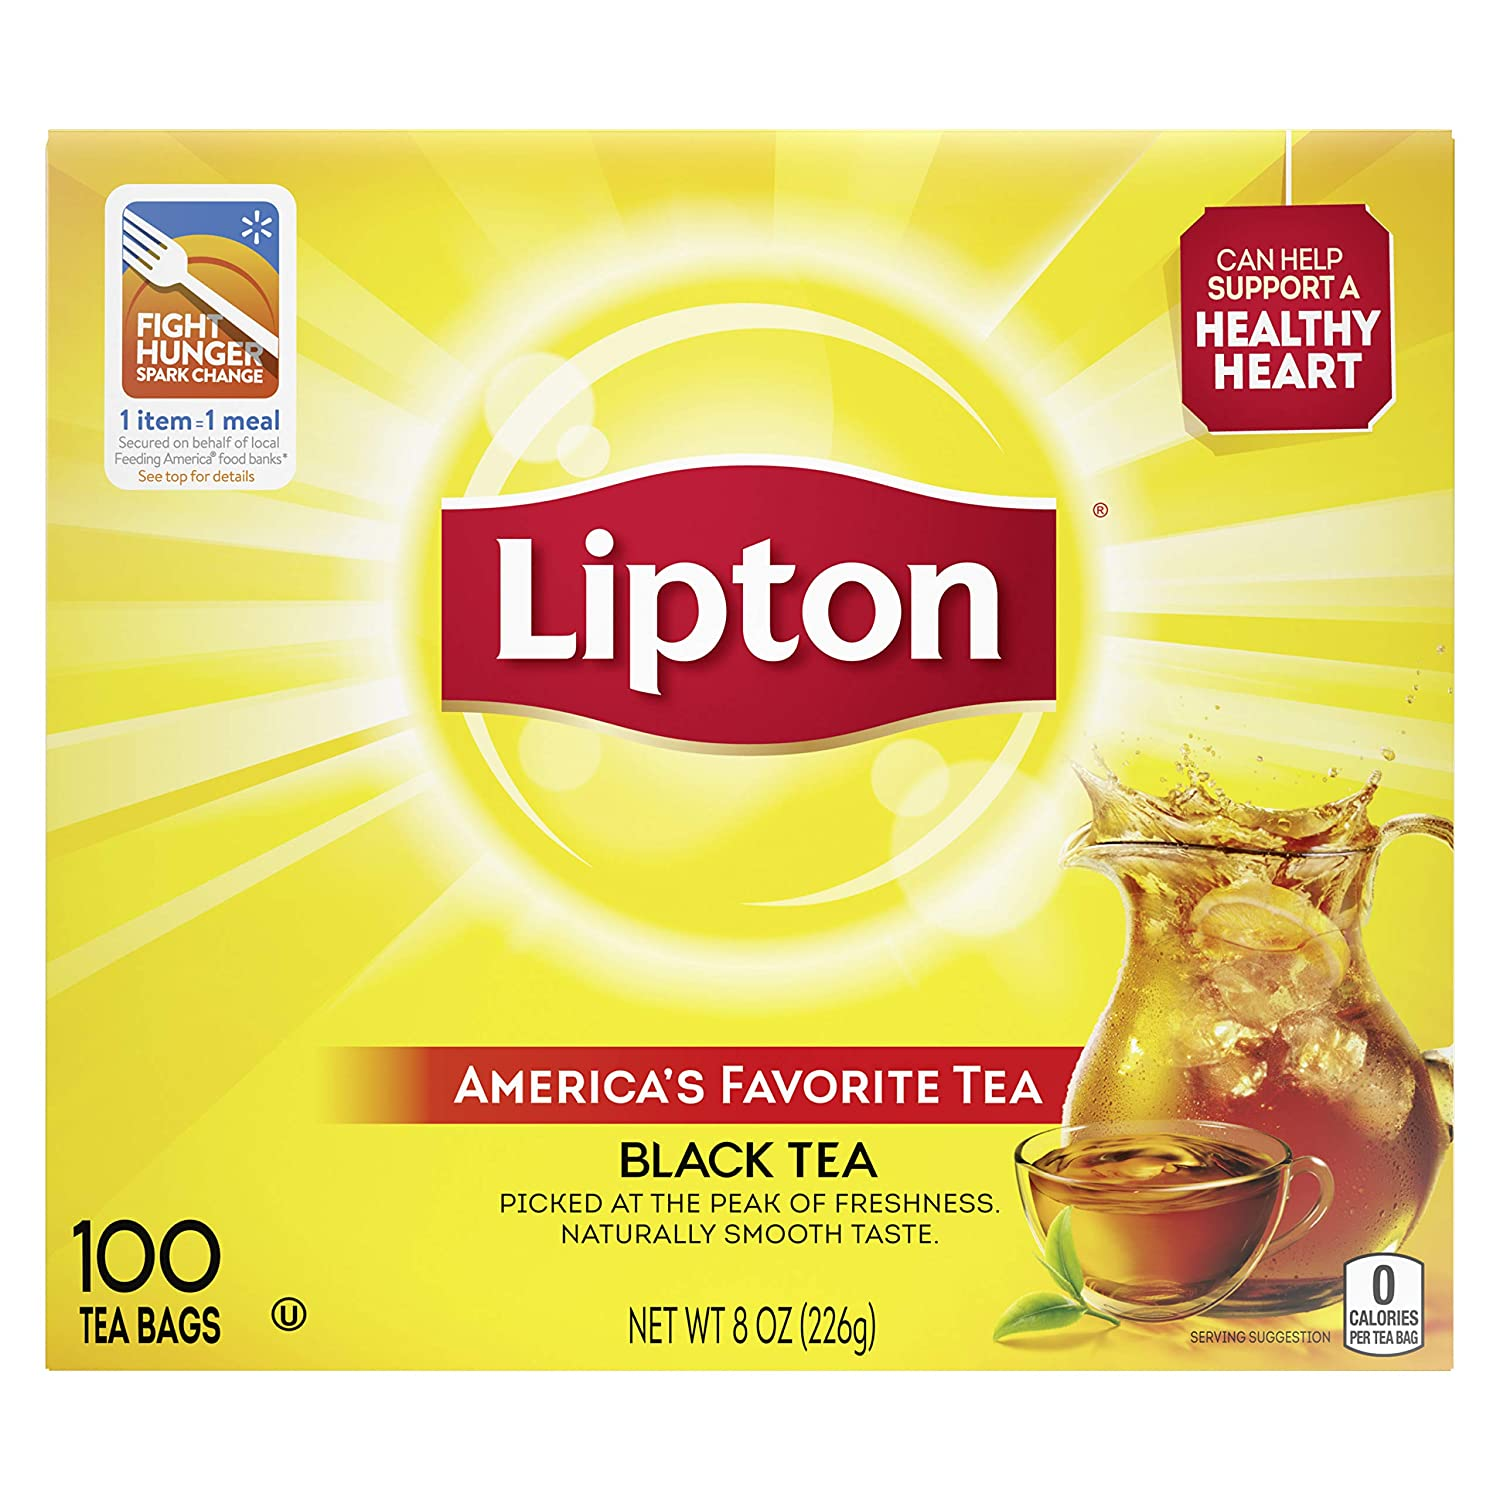 Lipton Black Enveloped Hot Tea Bags Made with Tea Leaves Sourced from Rainforest Alliance Certified Farms, 100 count, Pack of 10